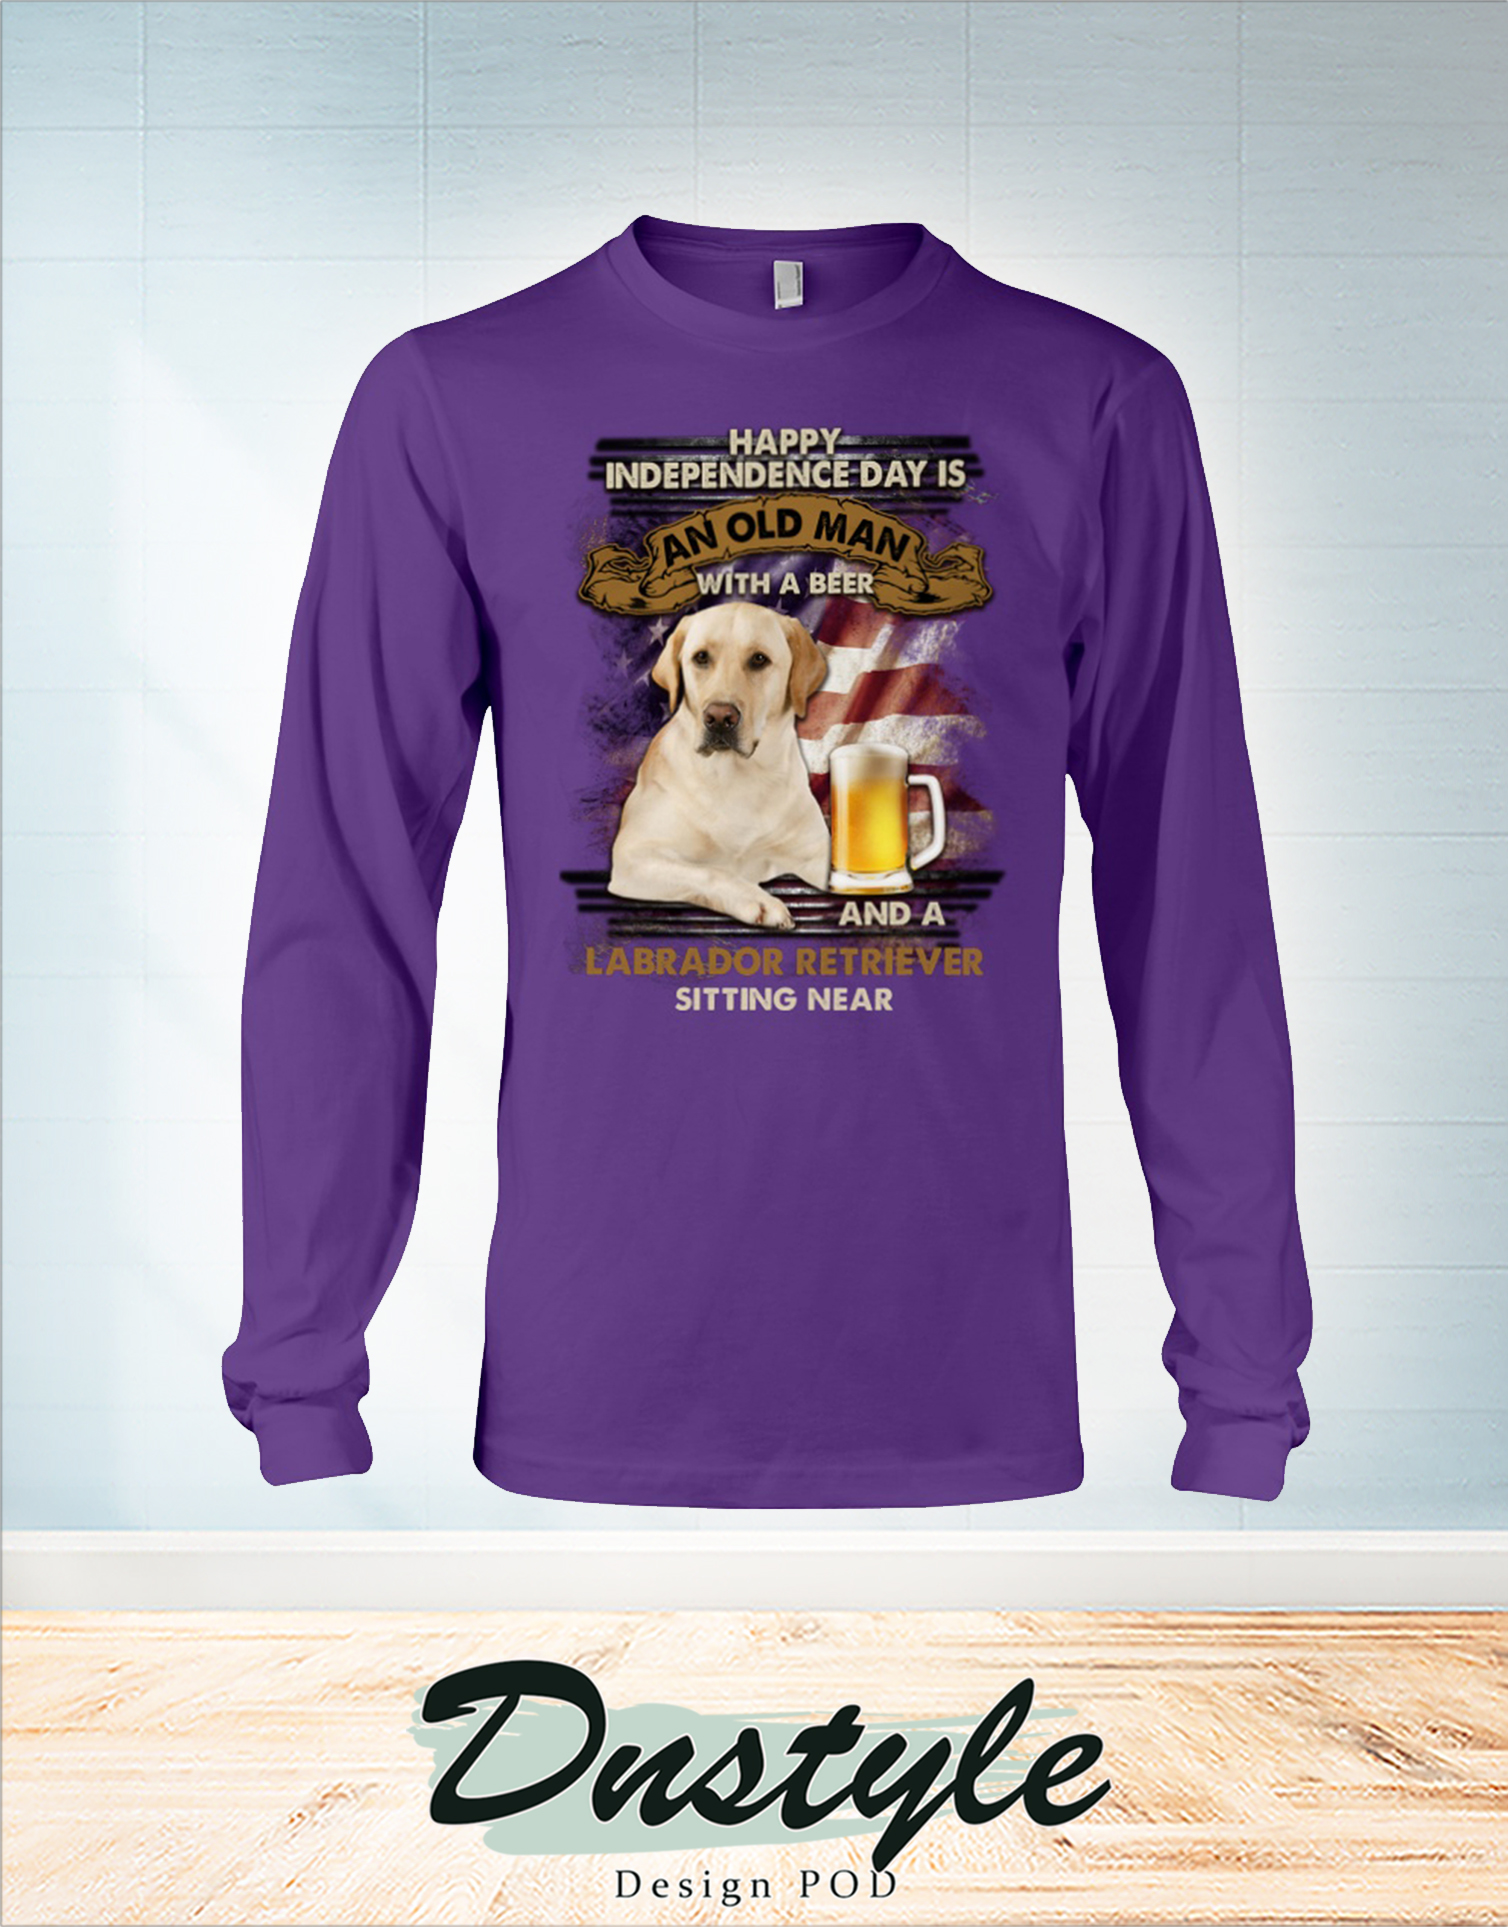 Happy independence day is an old man with a beer and a Labrador retriever sitting near long sleeve